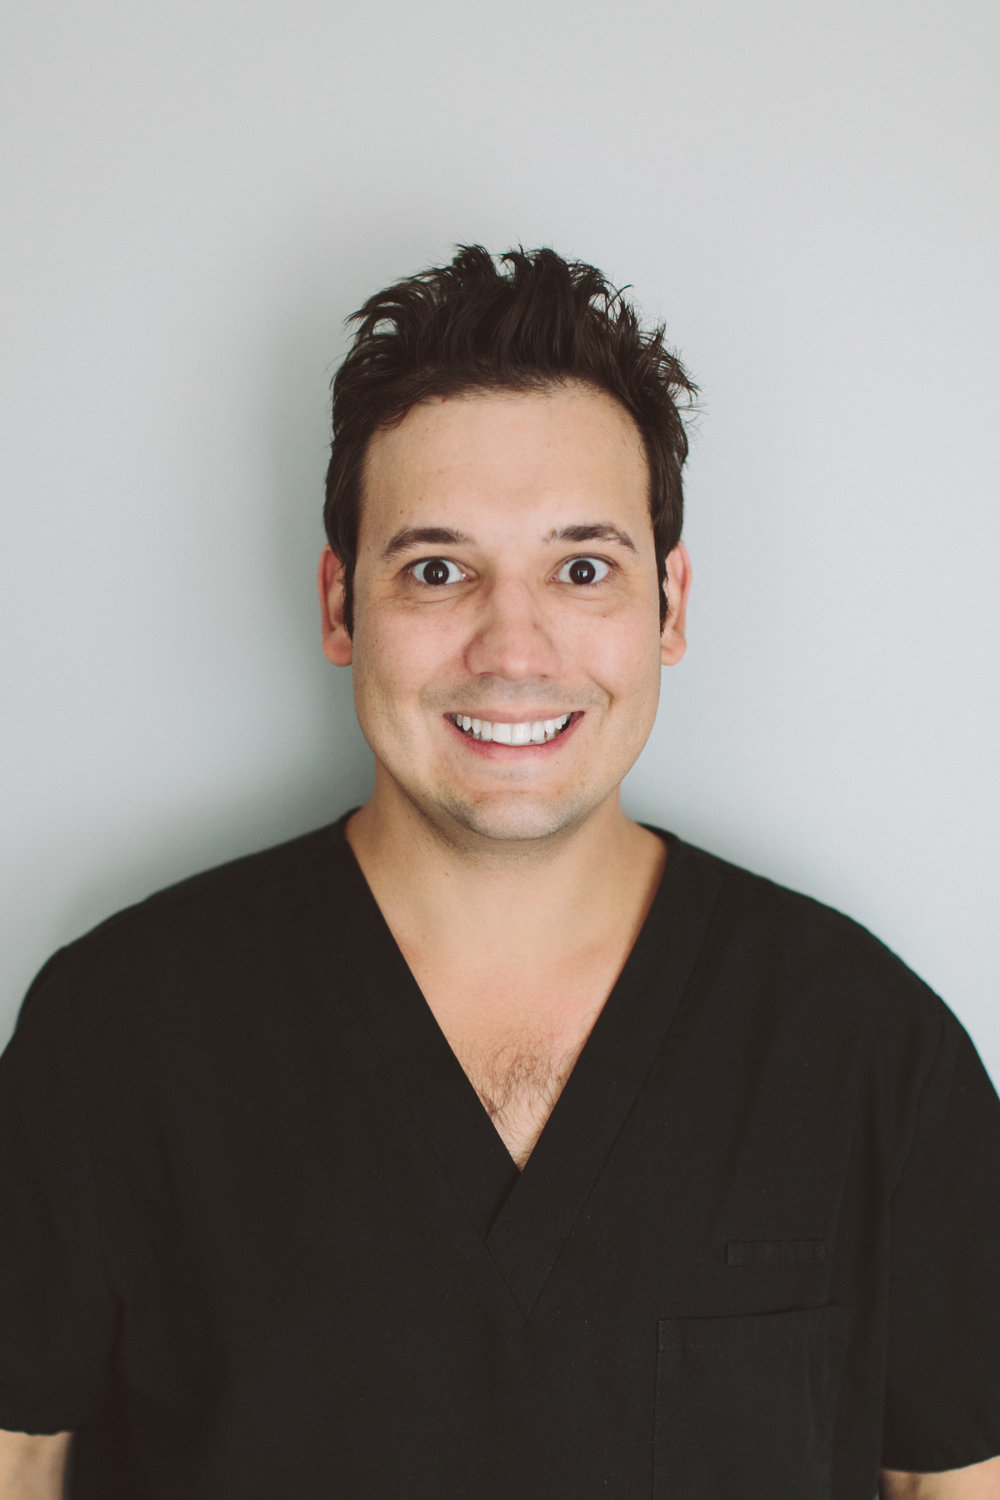 Anthony - Dr. Anthony Paul Barzan has been in practice since 2011 with an emphasis on natural tooth preservation and oral health. Through a conservative approach, he aims to make every patient look and feel confident in their smile. He has experience in cosmetic, preventative, restorative, and emergency dentistry.Dr. Barzan took over his late father's practice and carries on the tradition of compassionate dentistry. Born and raised in Sault Ste. Marie, Dr. Barzan received his dental degree from McGill University and completed his undergraduate degree at Western.In his free time, Dr. Barzan loves to curl, spend time with his wife, son and dog at camp. He is a big sports fan! GO HOUNDS GO!